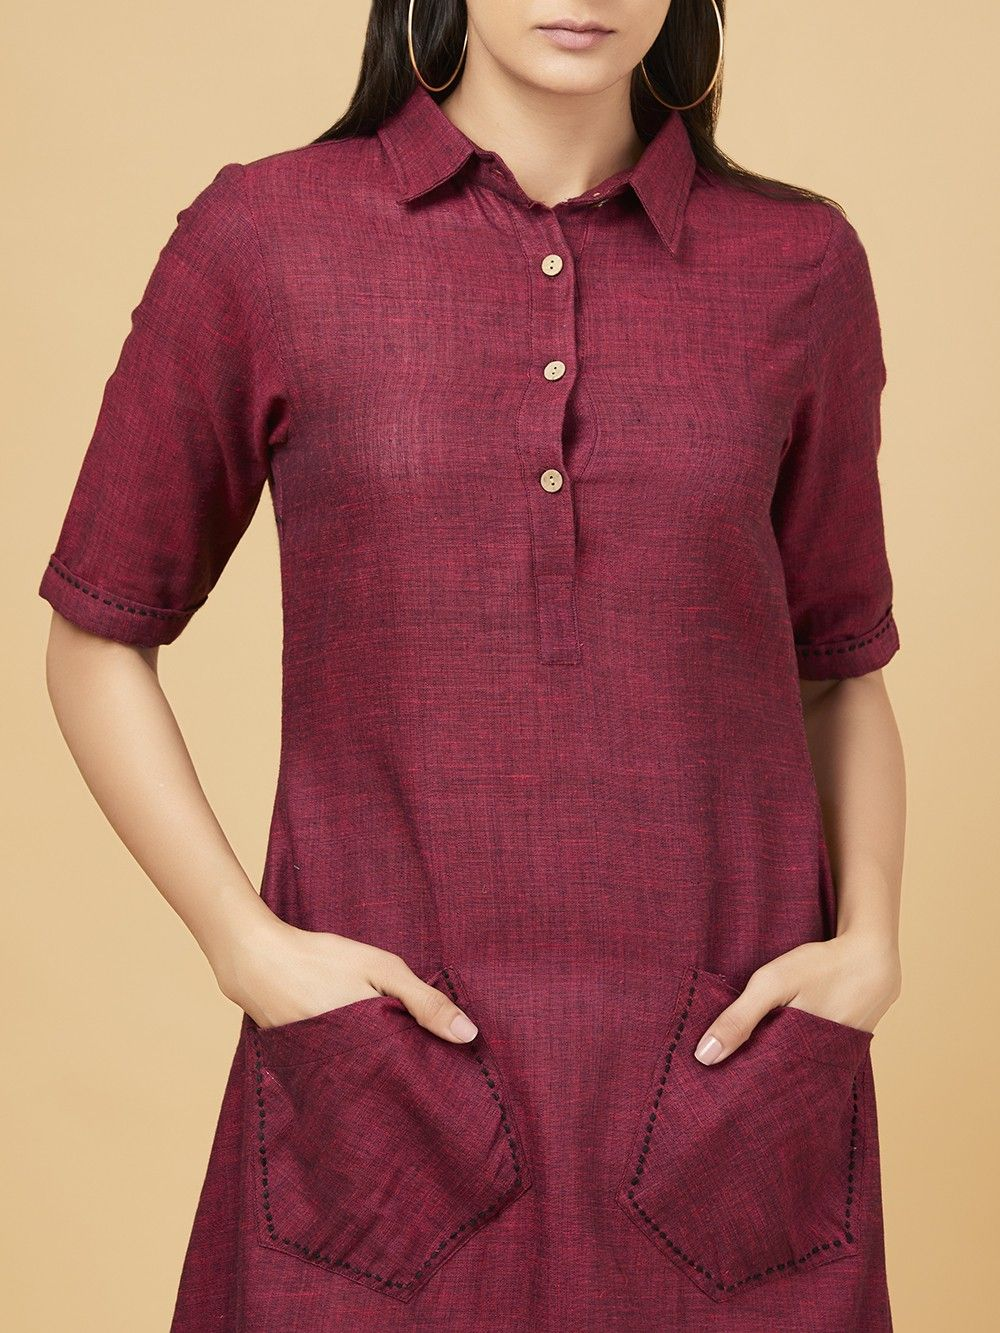 91e5d1c5c1 Buy Wine Cotton Linen High Low Dress online at Theloom